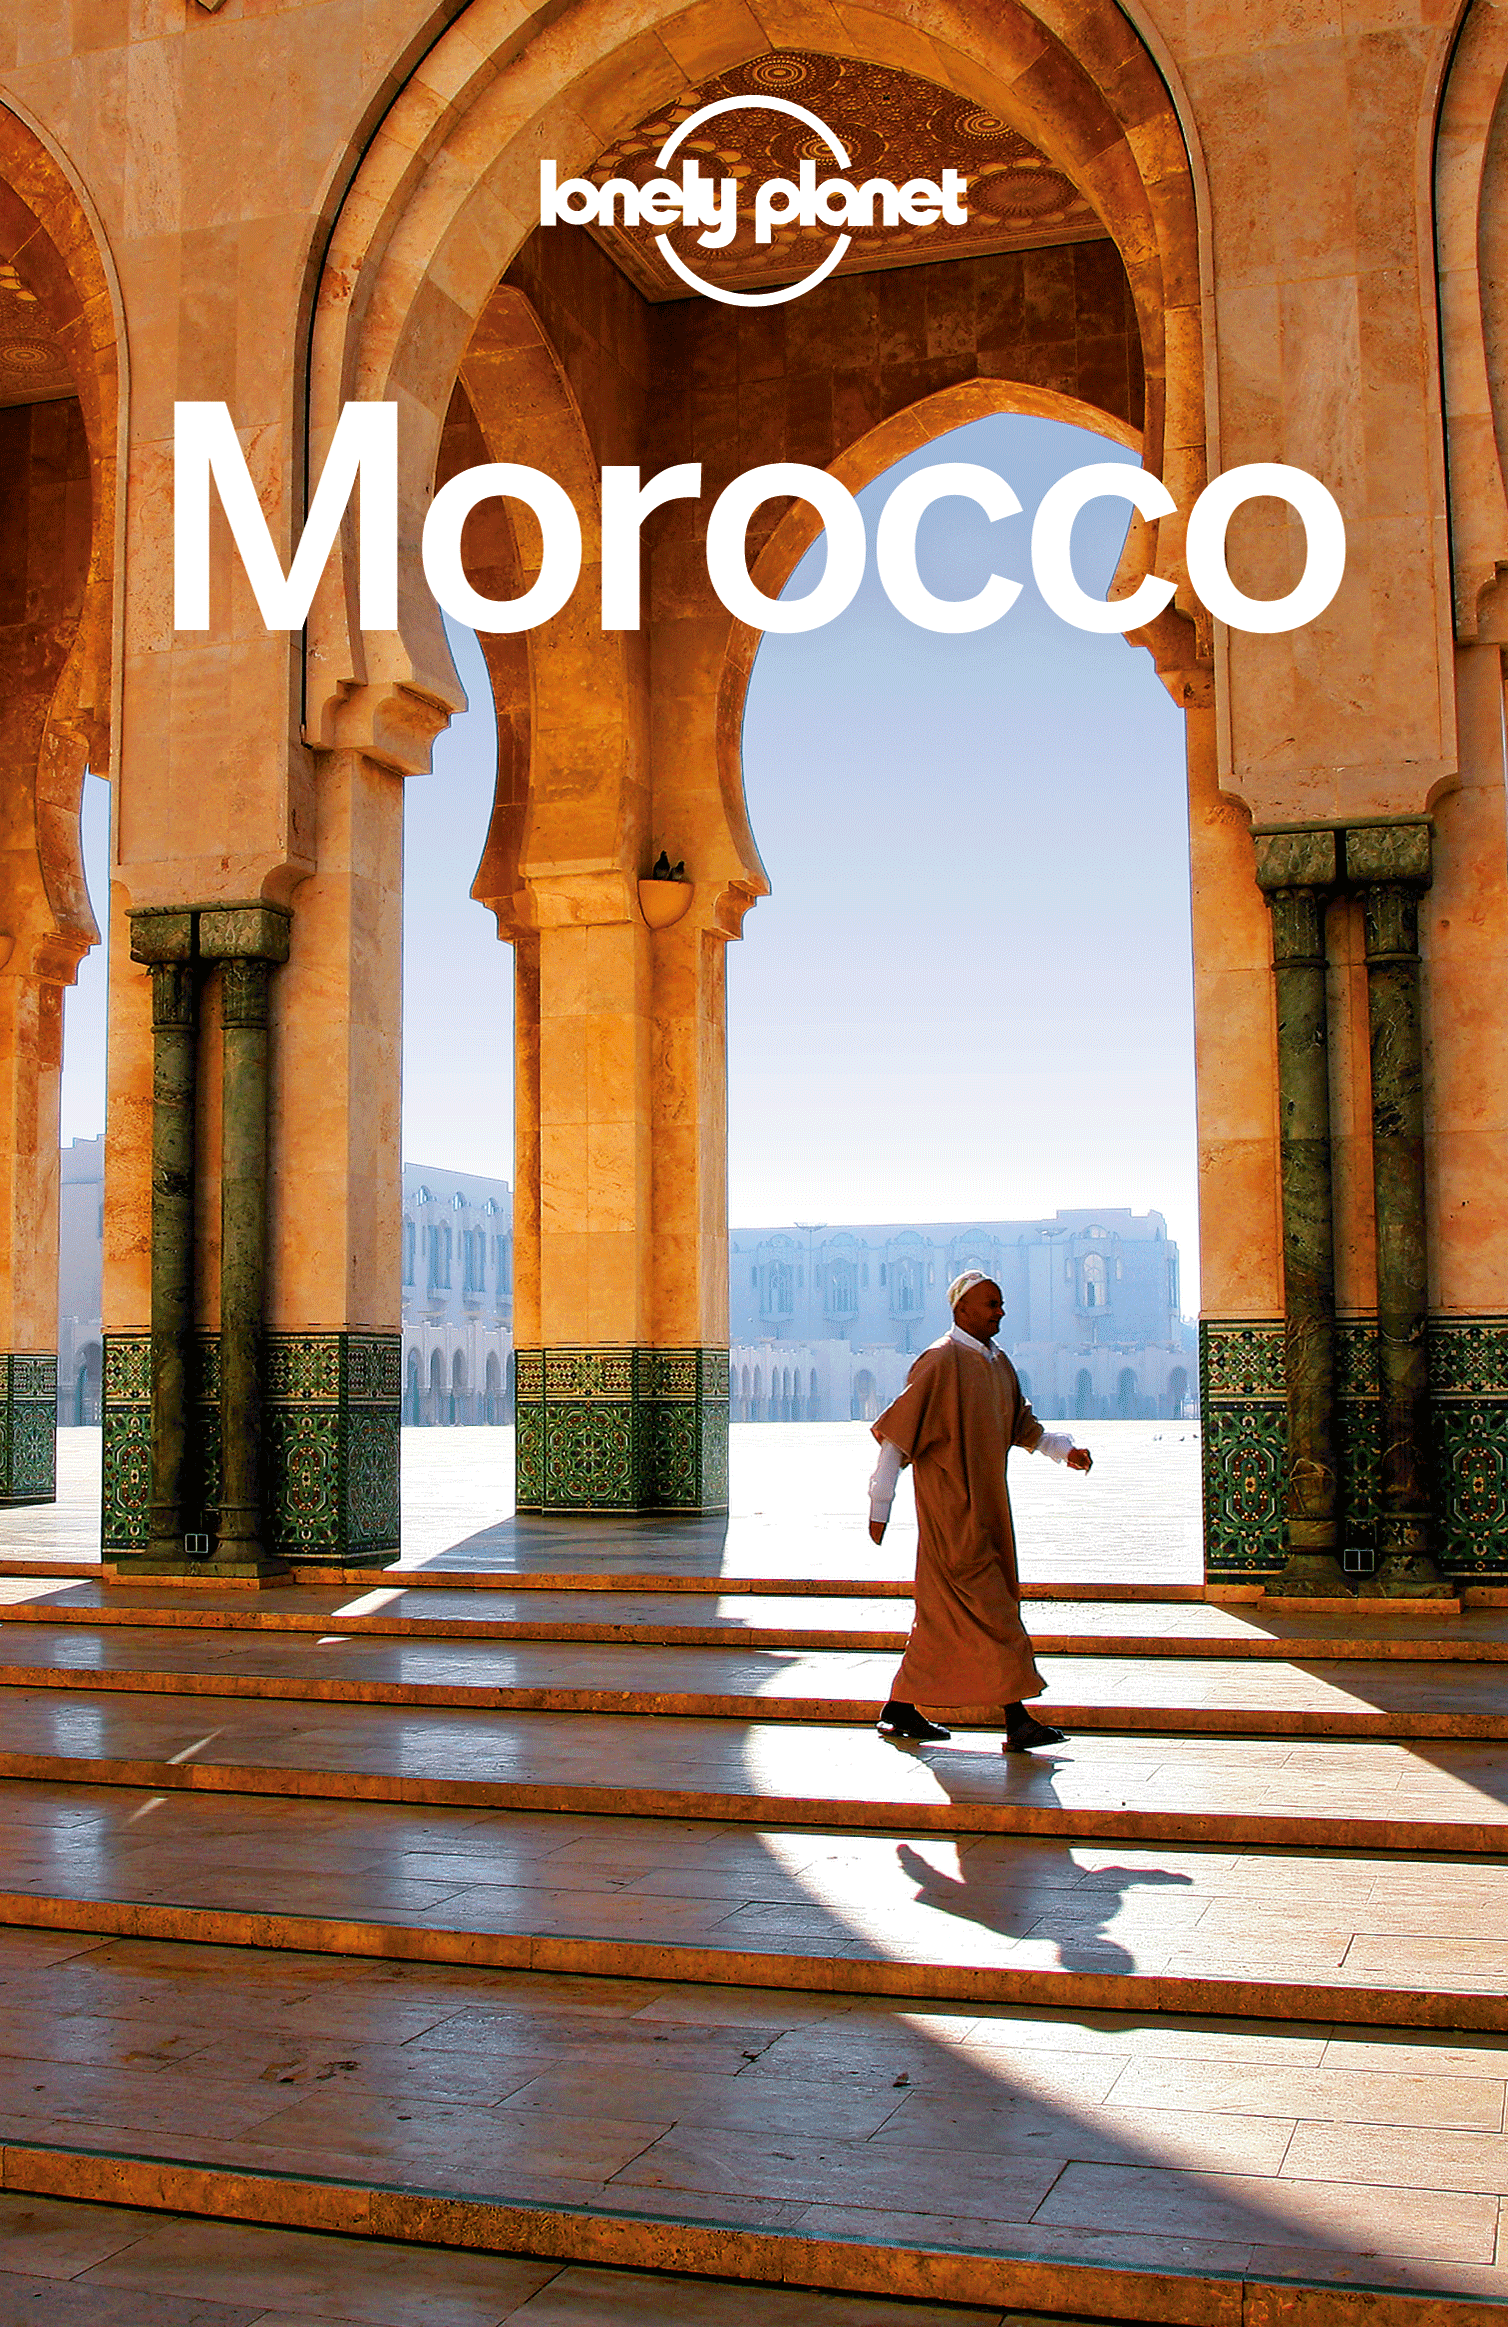 Lonely Planet Morocco By: Alison Bing,Helen Ranger,James Bainbridge,Lonely Planet,Paul Clammer